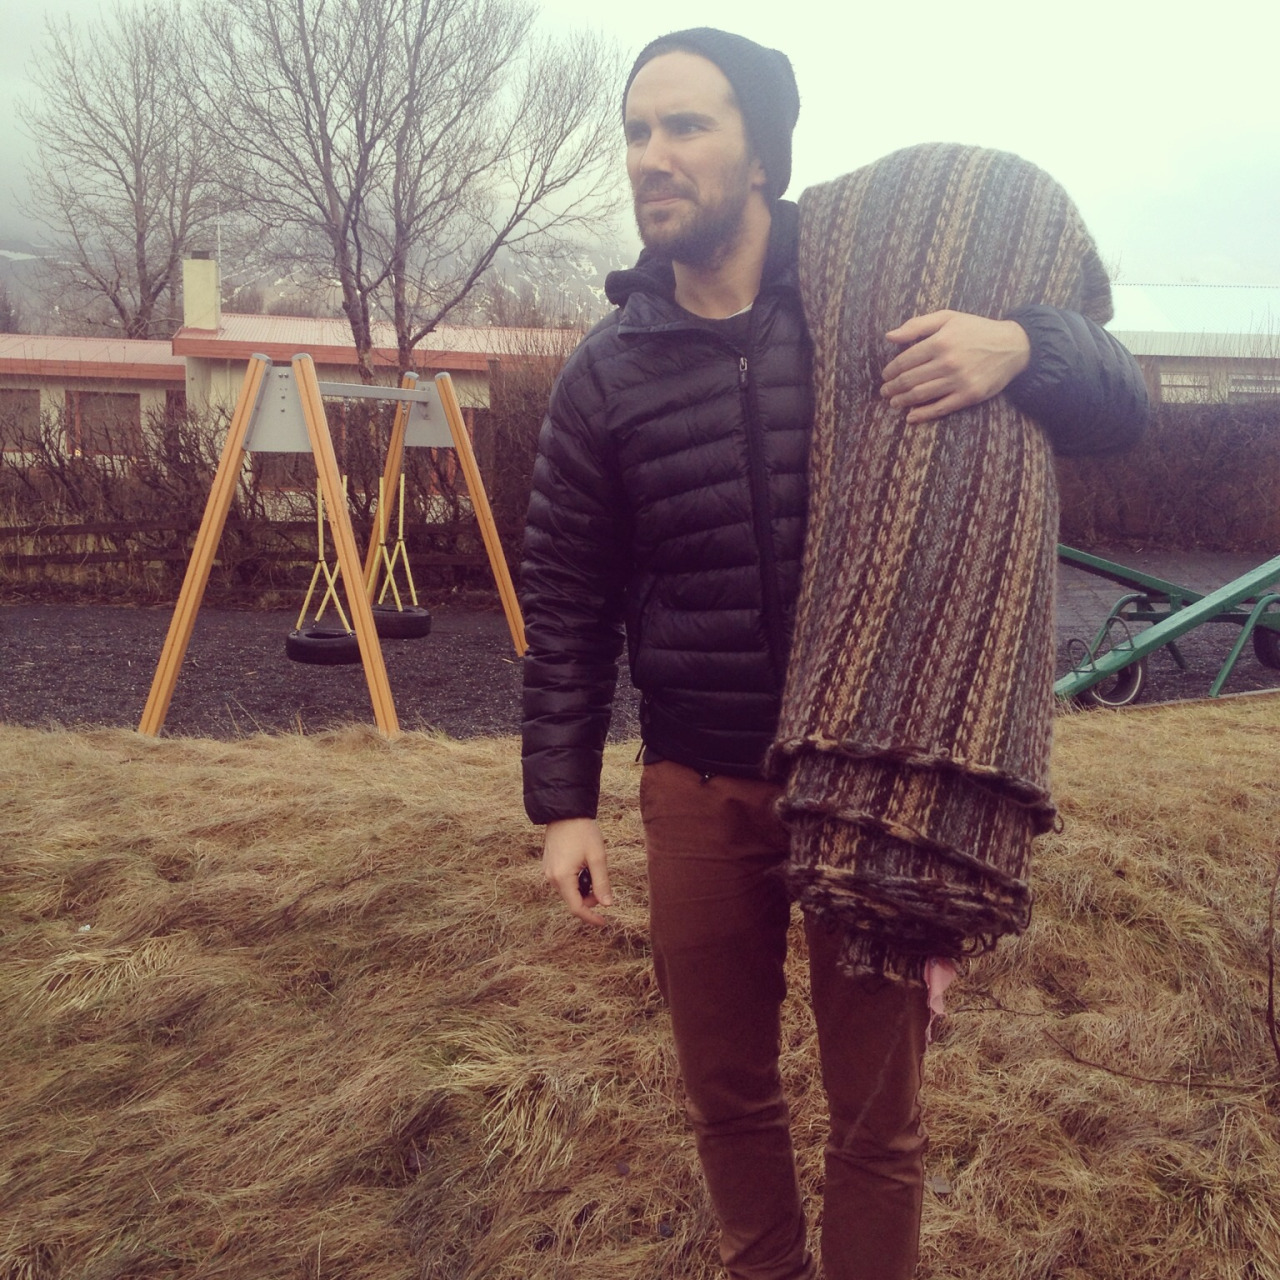 Oh don't mind this fellow, he's just carrying 6 meters of Icelandic wool. Hidden is the design of some new goods we've been working on…